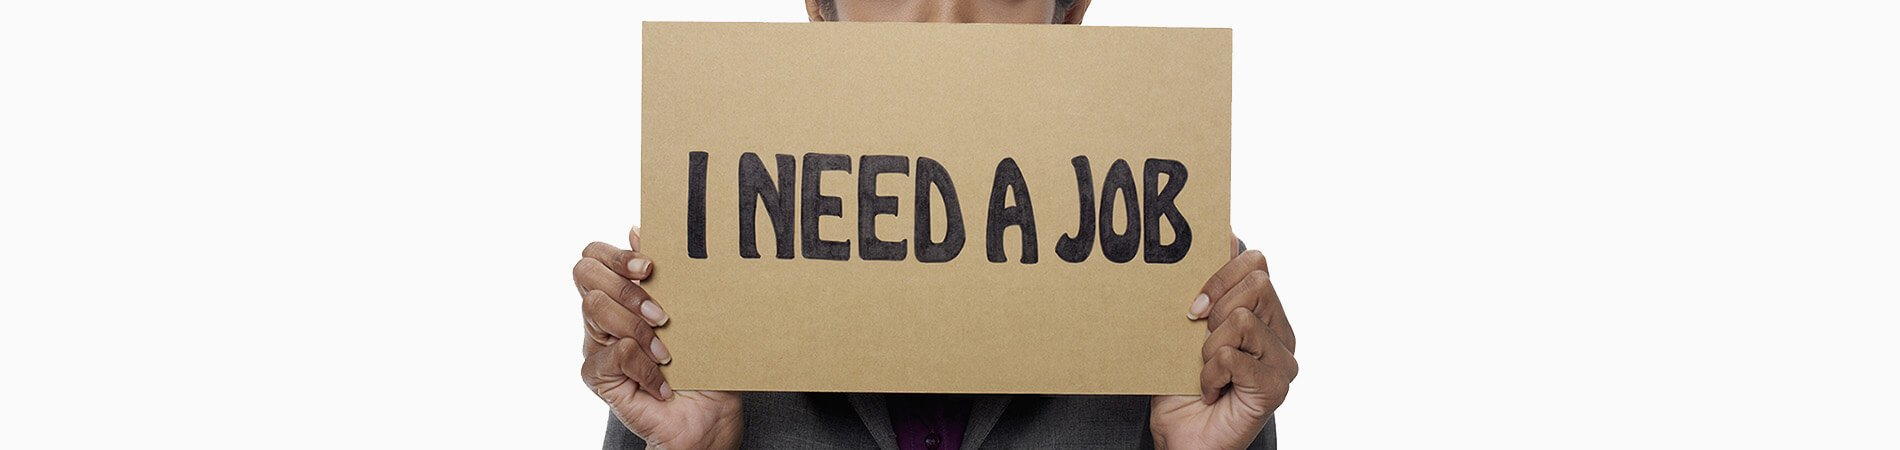 Unemployed in Los Angeles?  here's how to get a loan